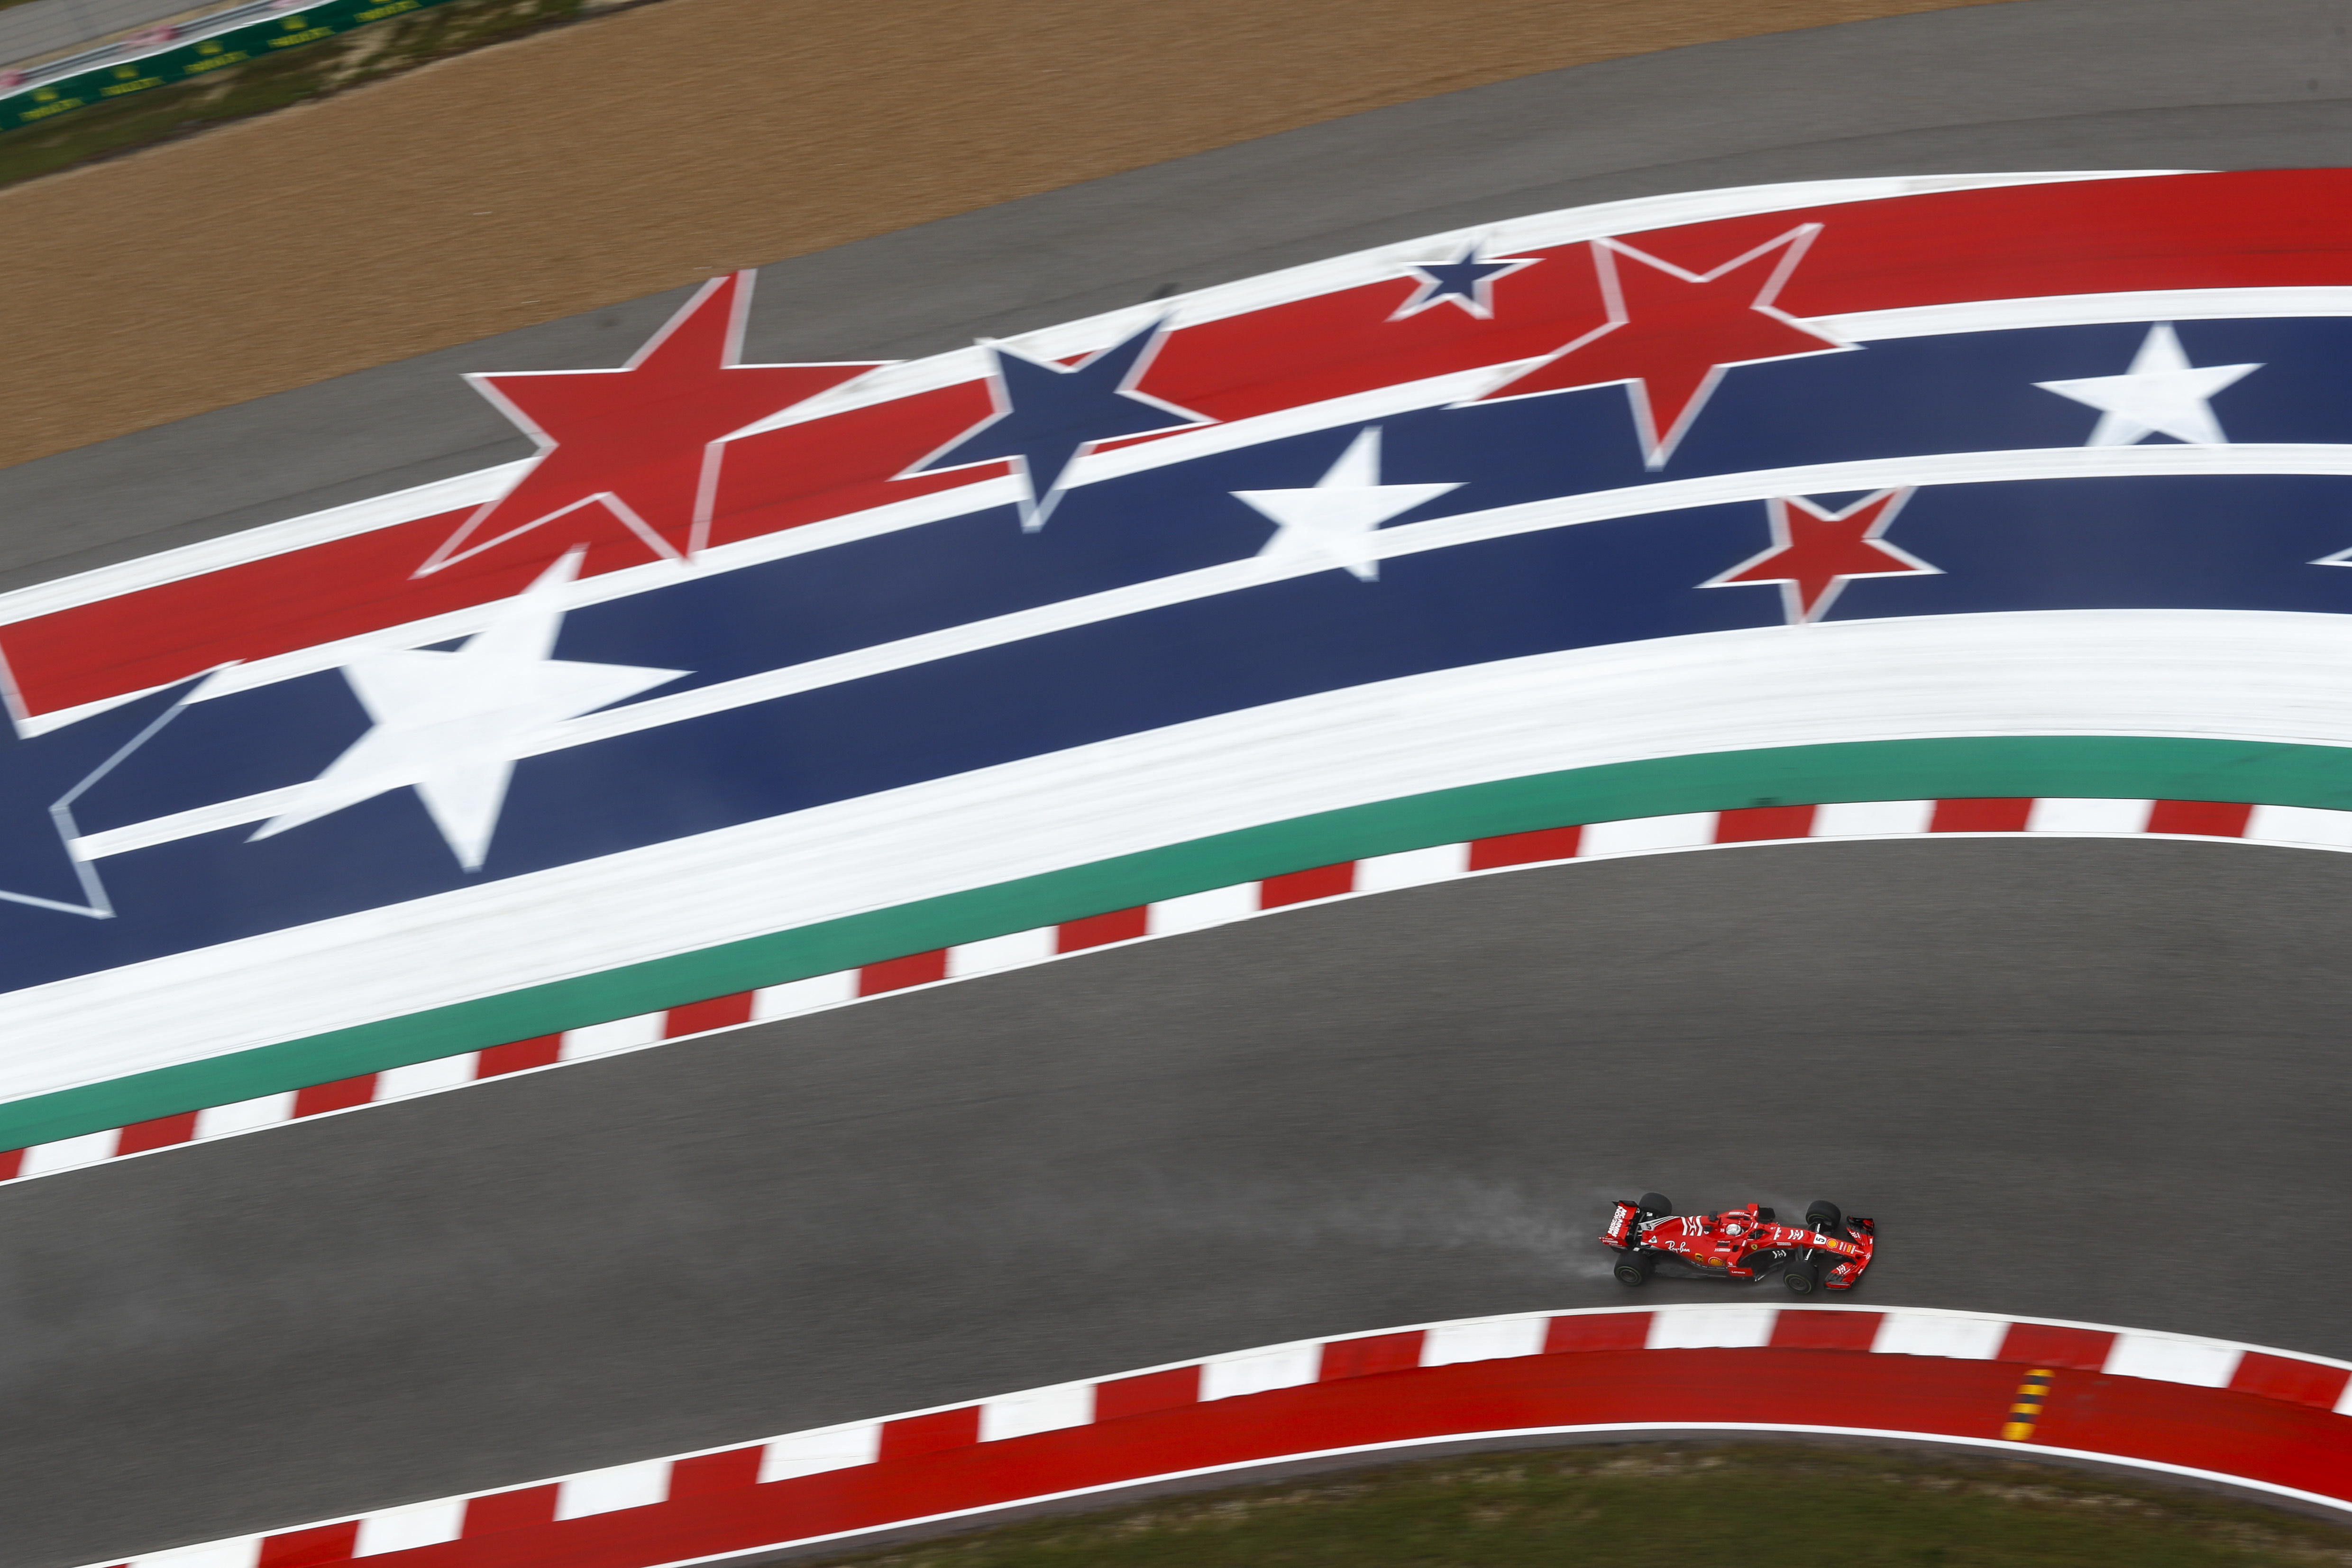 2018 USA Grand Prix: Everything you need to know